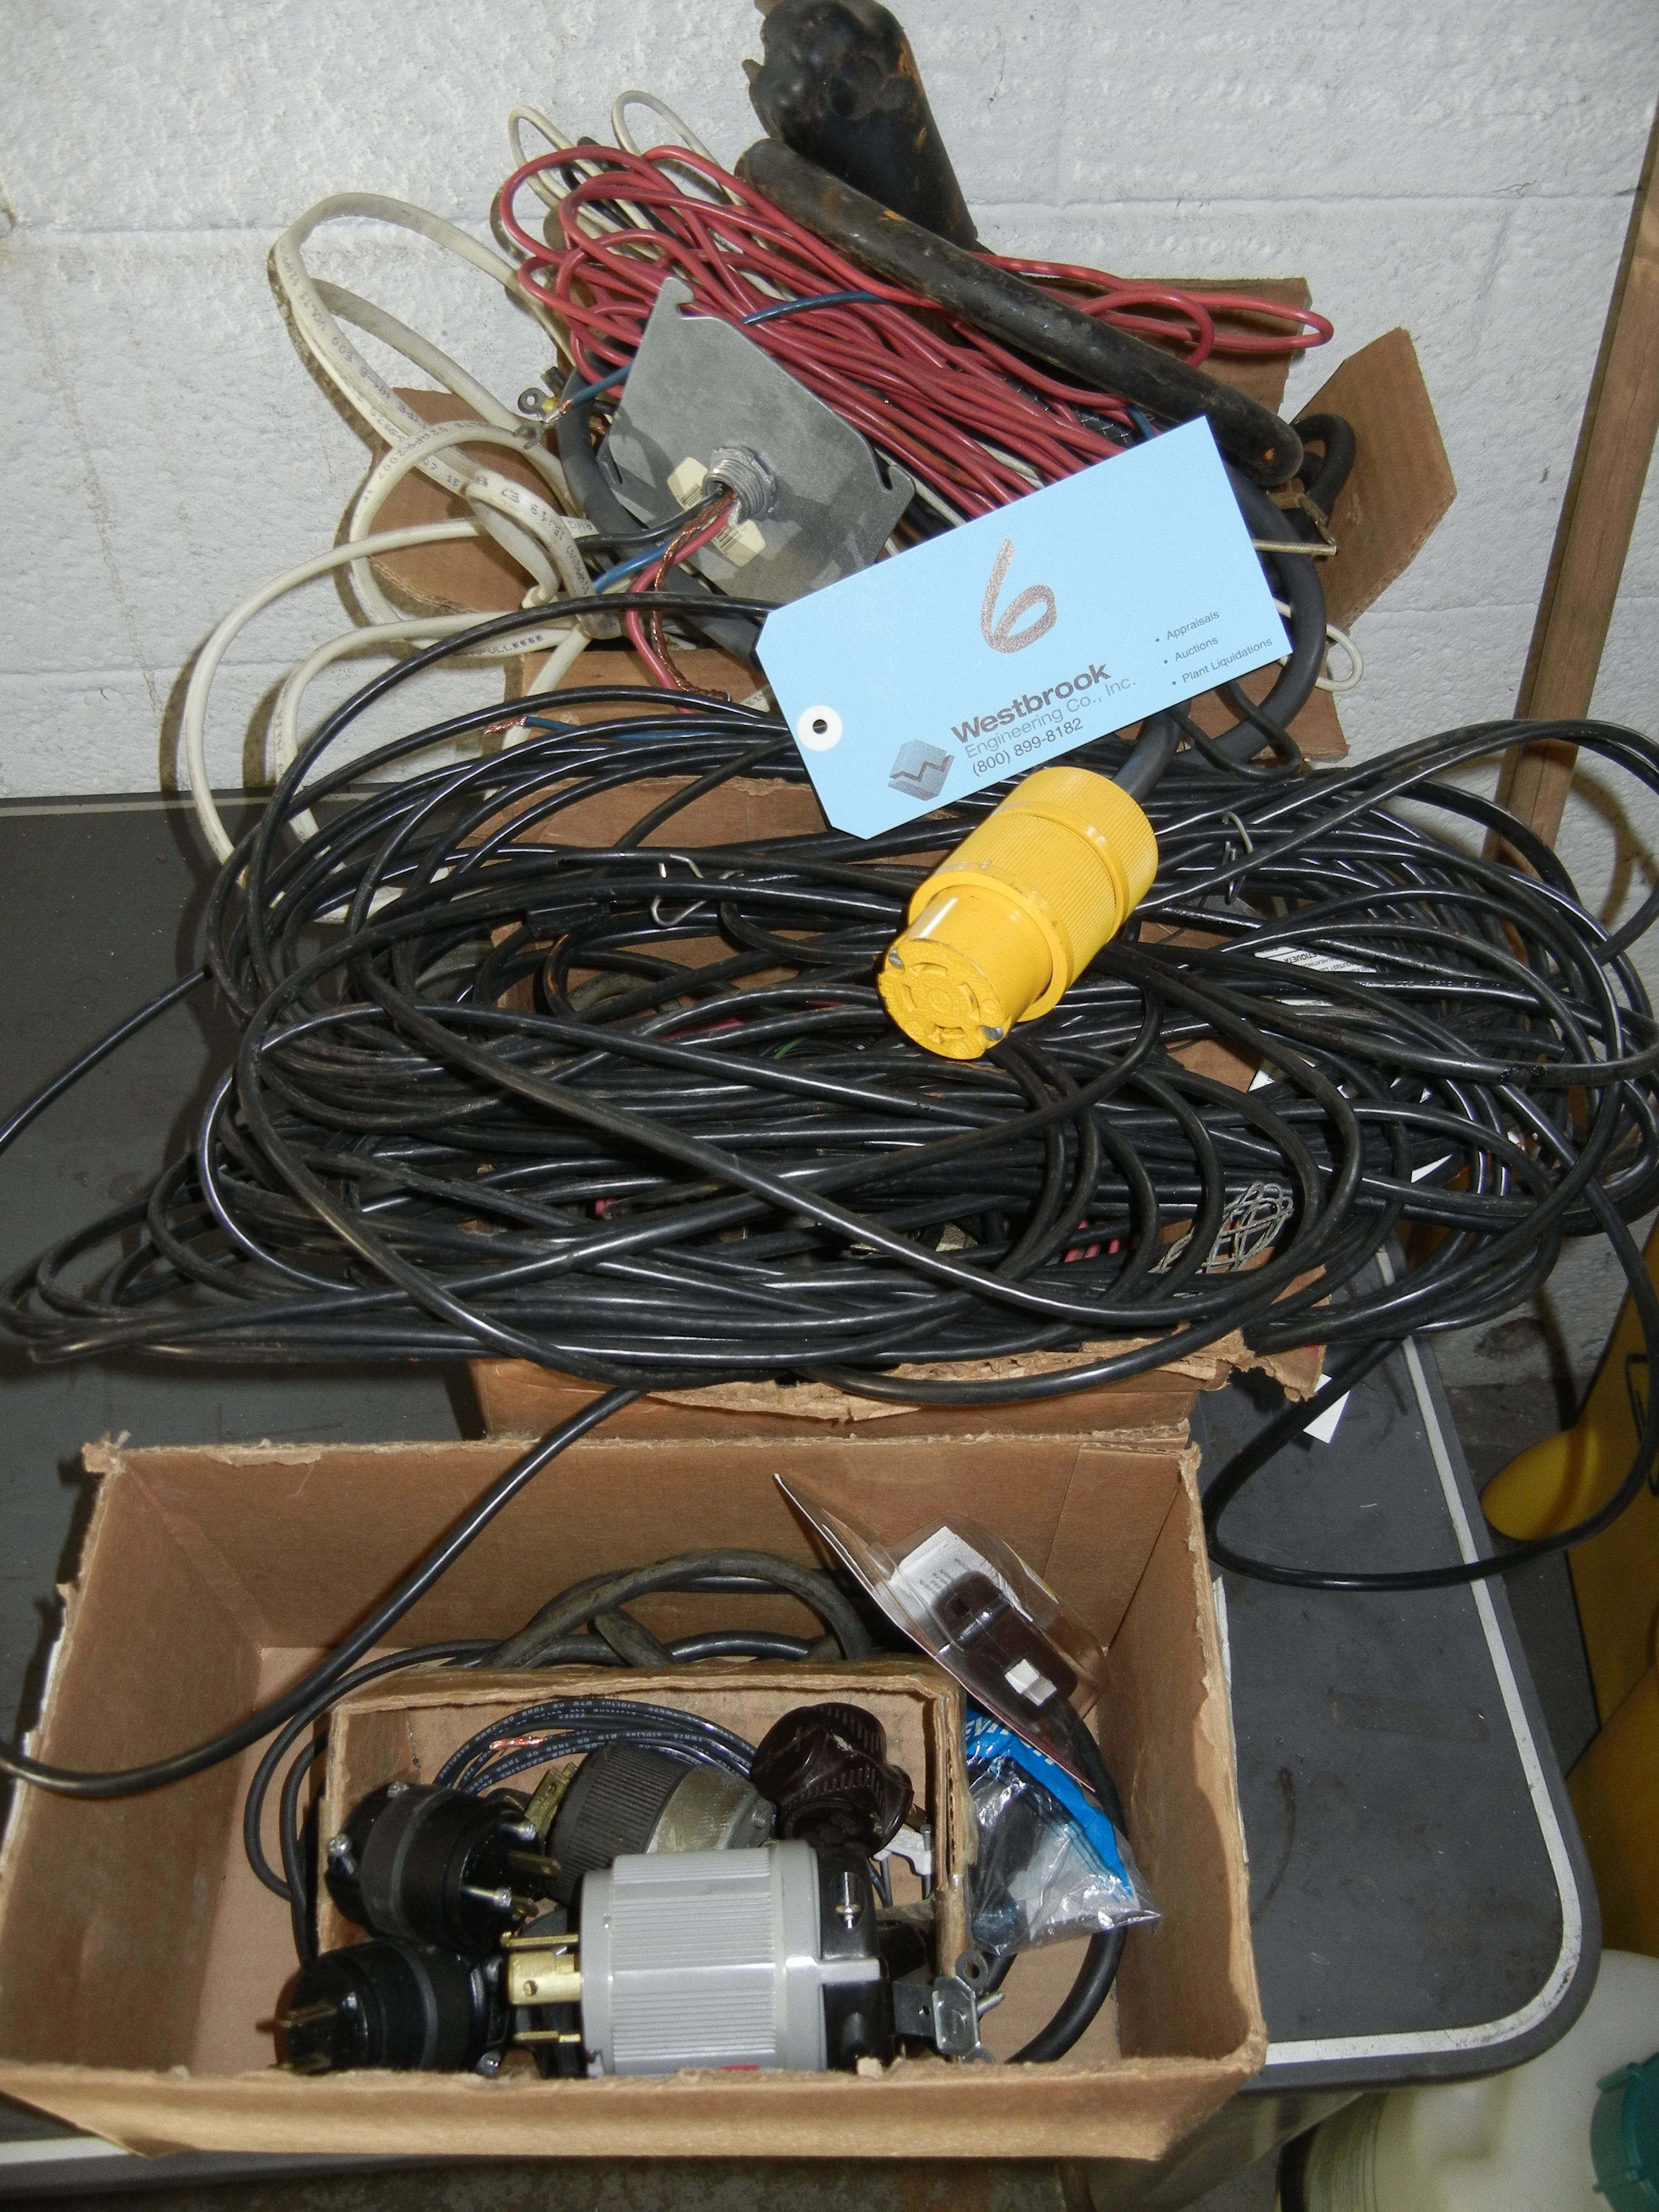 Assortment of electrical wiring and plugs